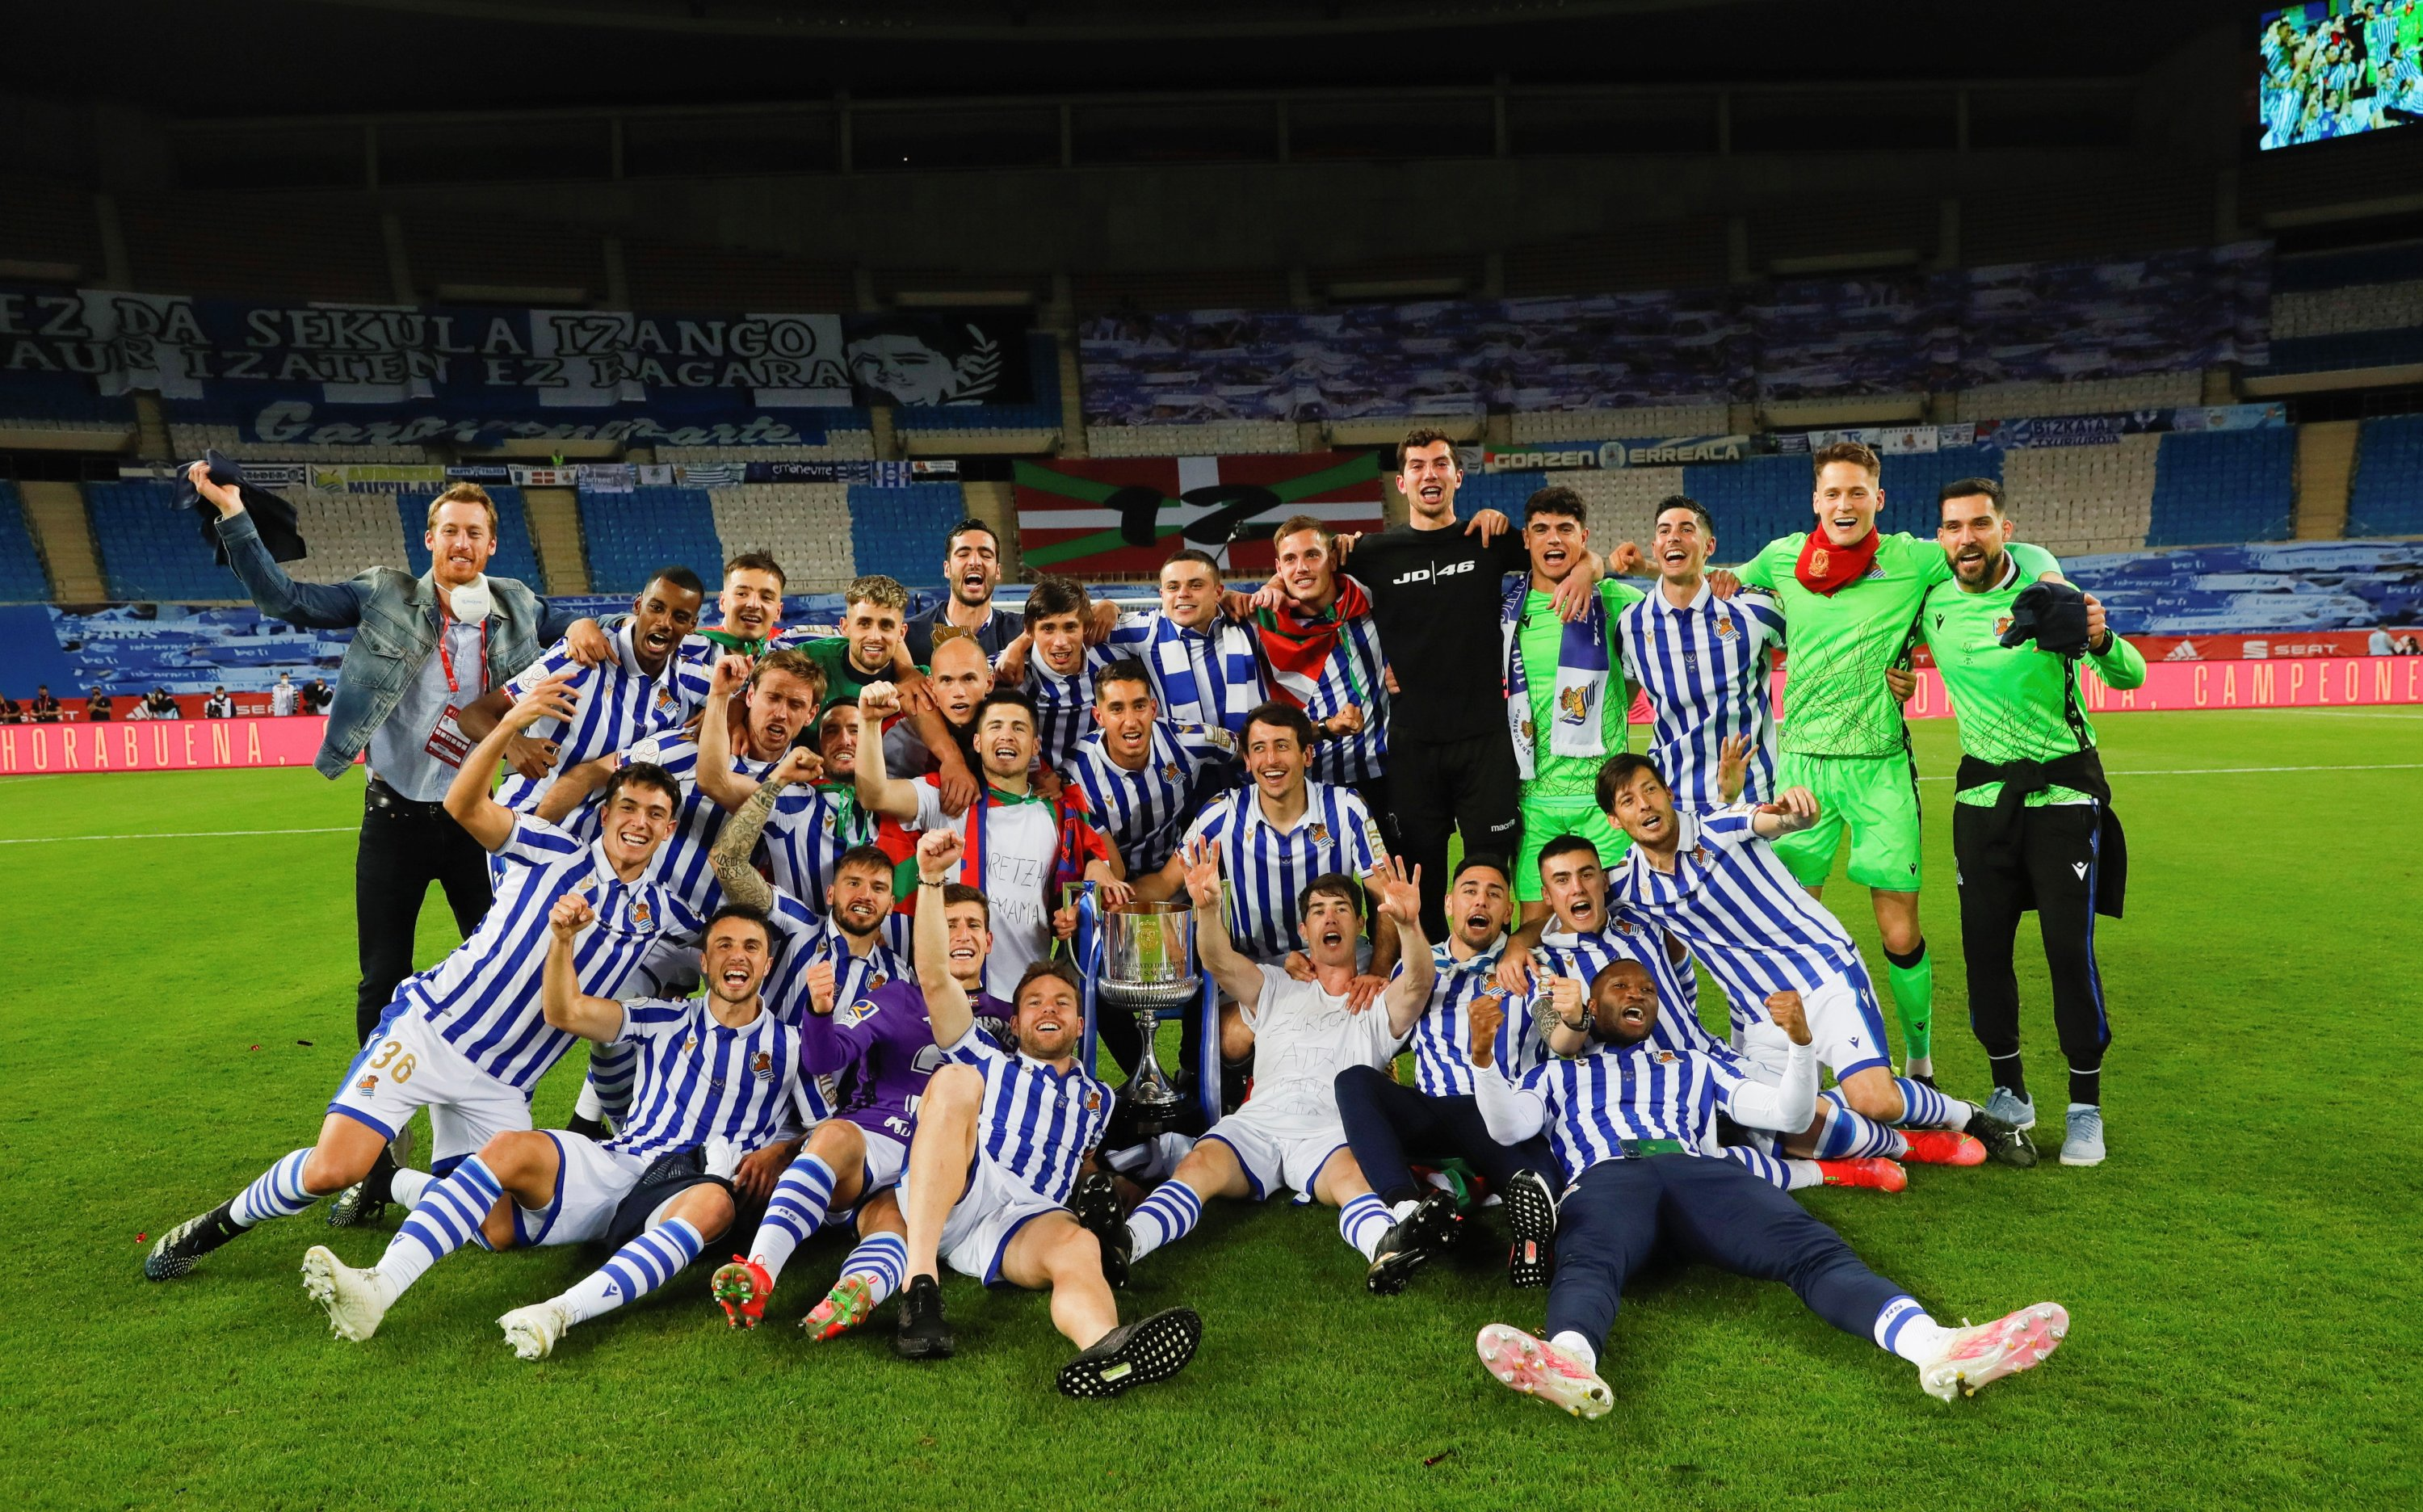 A handout photo made available by the Spanish Royal Soccer Federation (RFEF) shows Real Sociedad players after winning the 2020 Copa Del Rey final match against Athletic Bilbao at La Cartuja stadium in Seville, Andalusia, Spain, April 03, 2921. (RFEF via EPA)